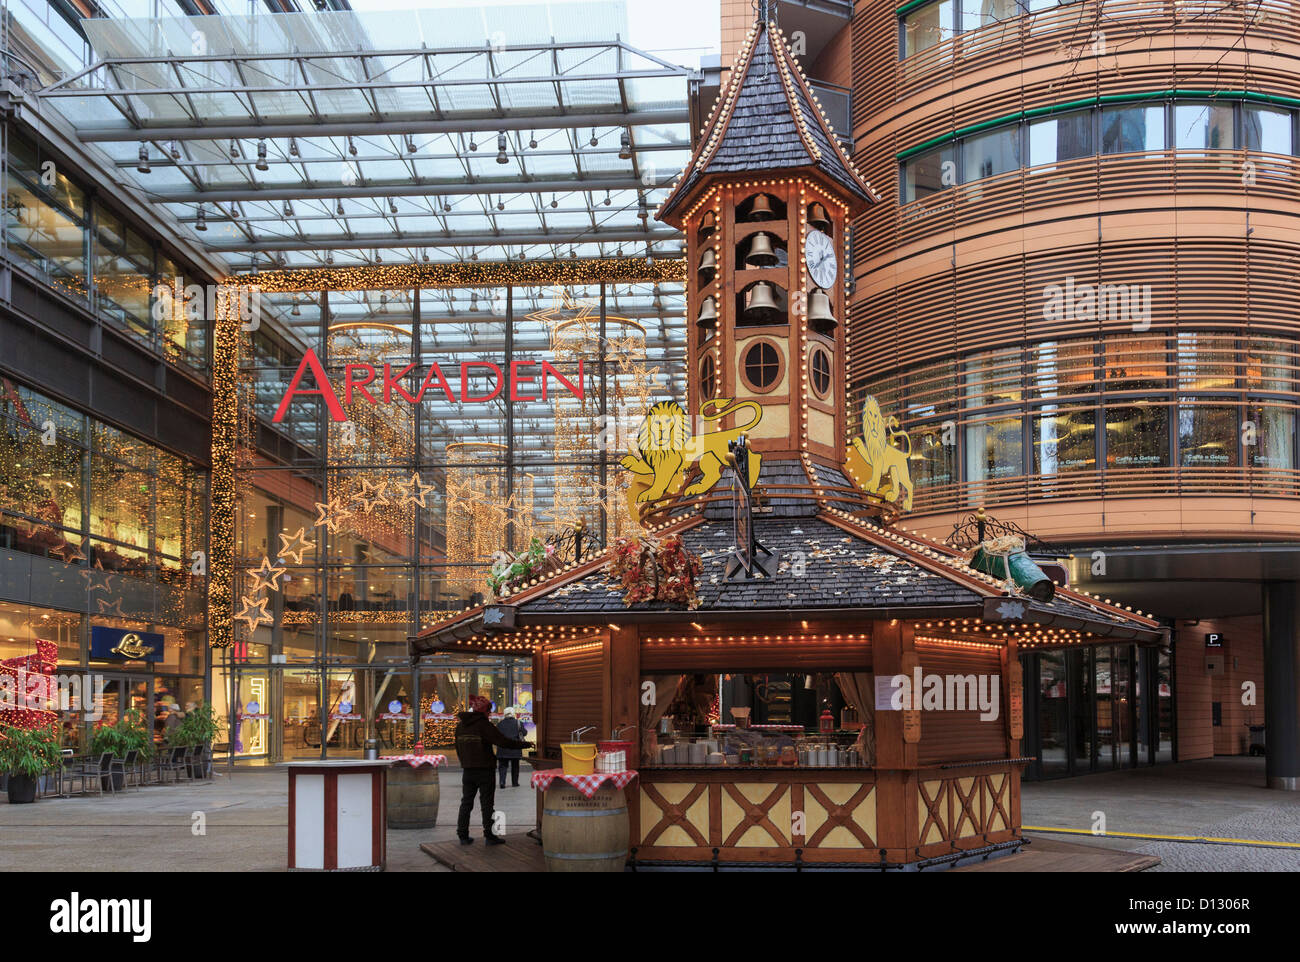 Christmas market stall by the entrance to Arkaden shopping centre mall at Potsdamer Platz, Berlin, Germany - Stock Image